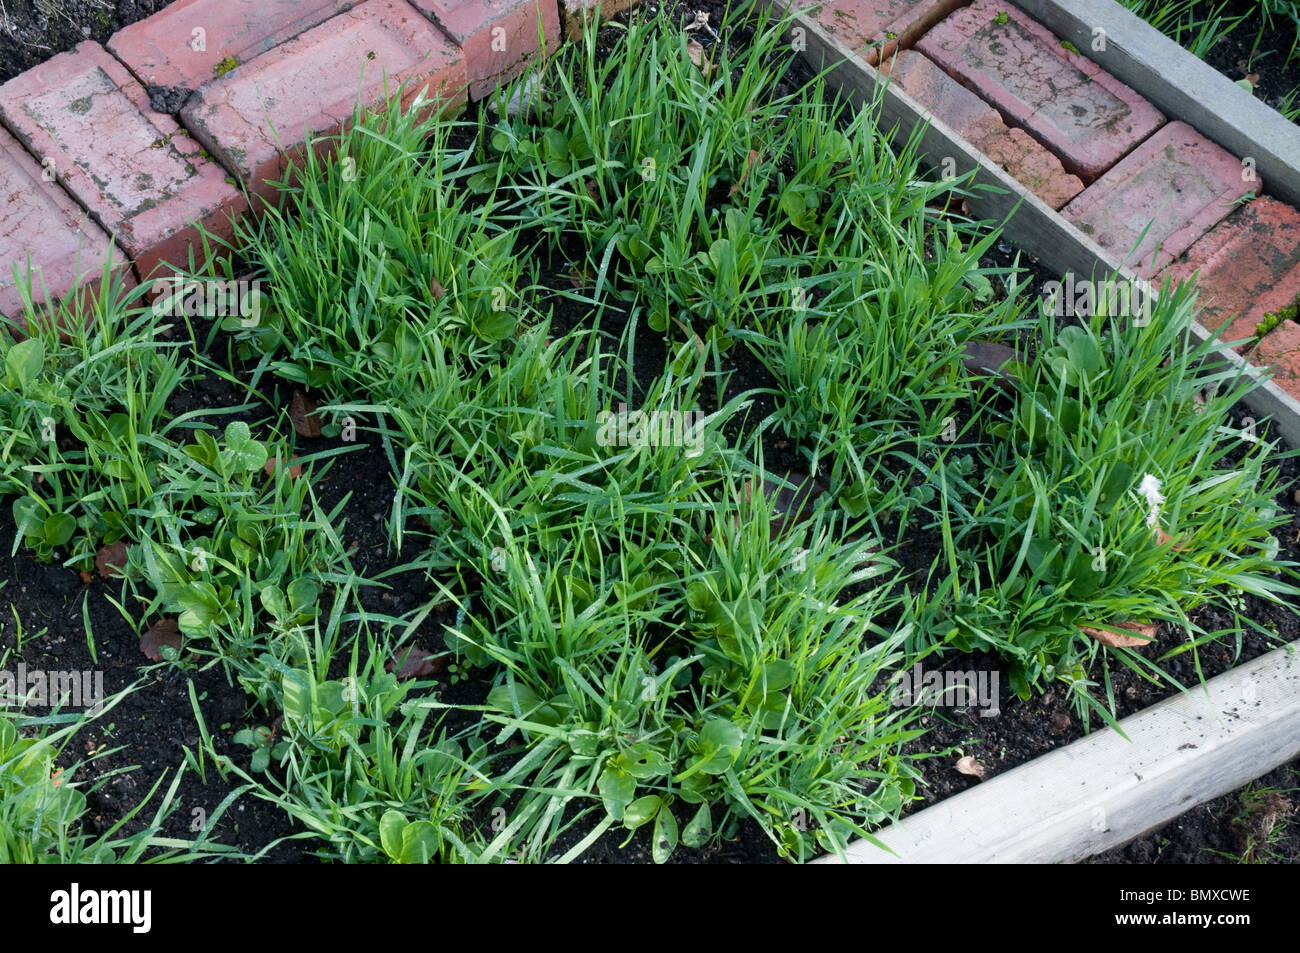 Green manure sown in garden bed during winter Stock Photo